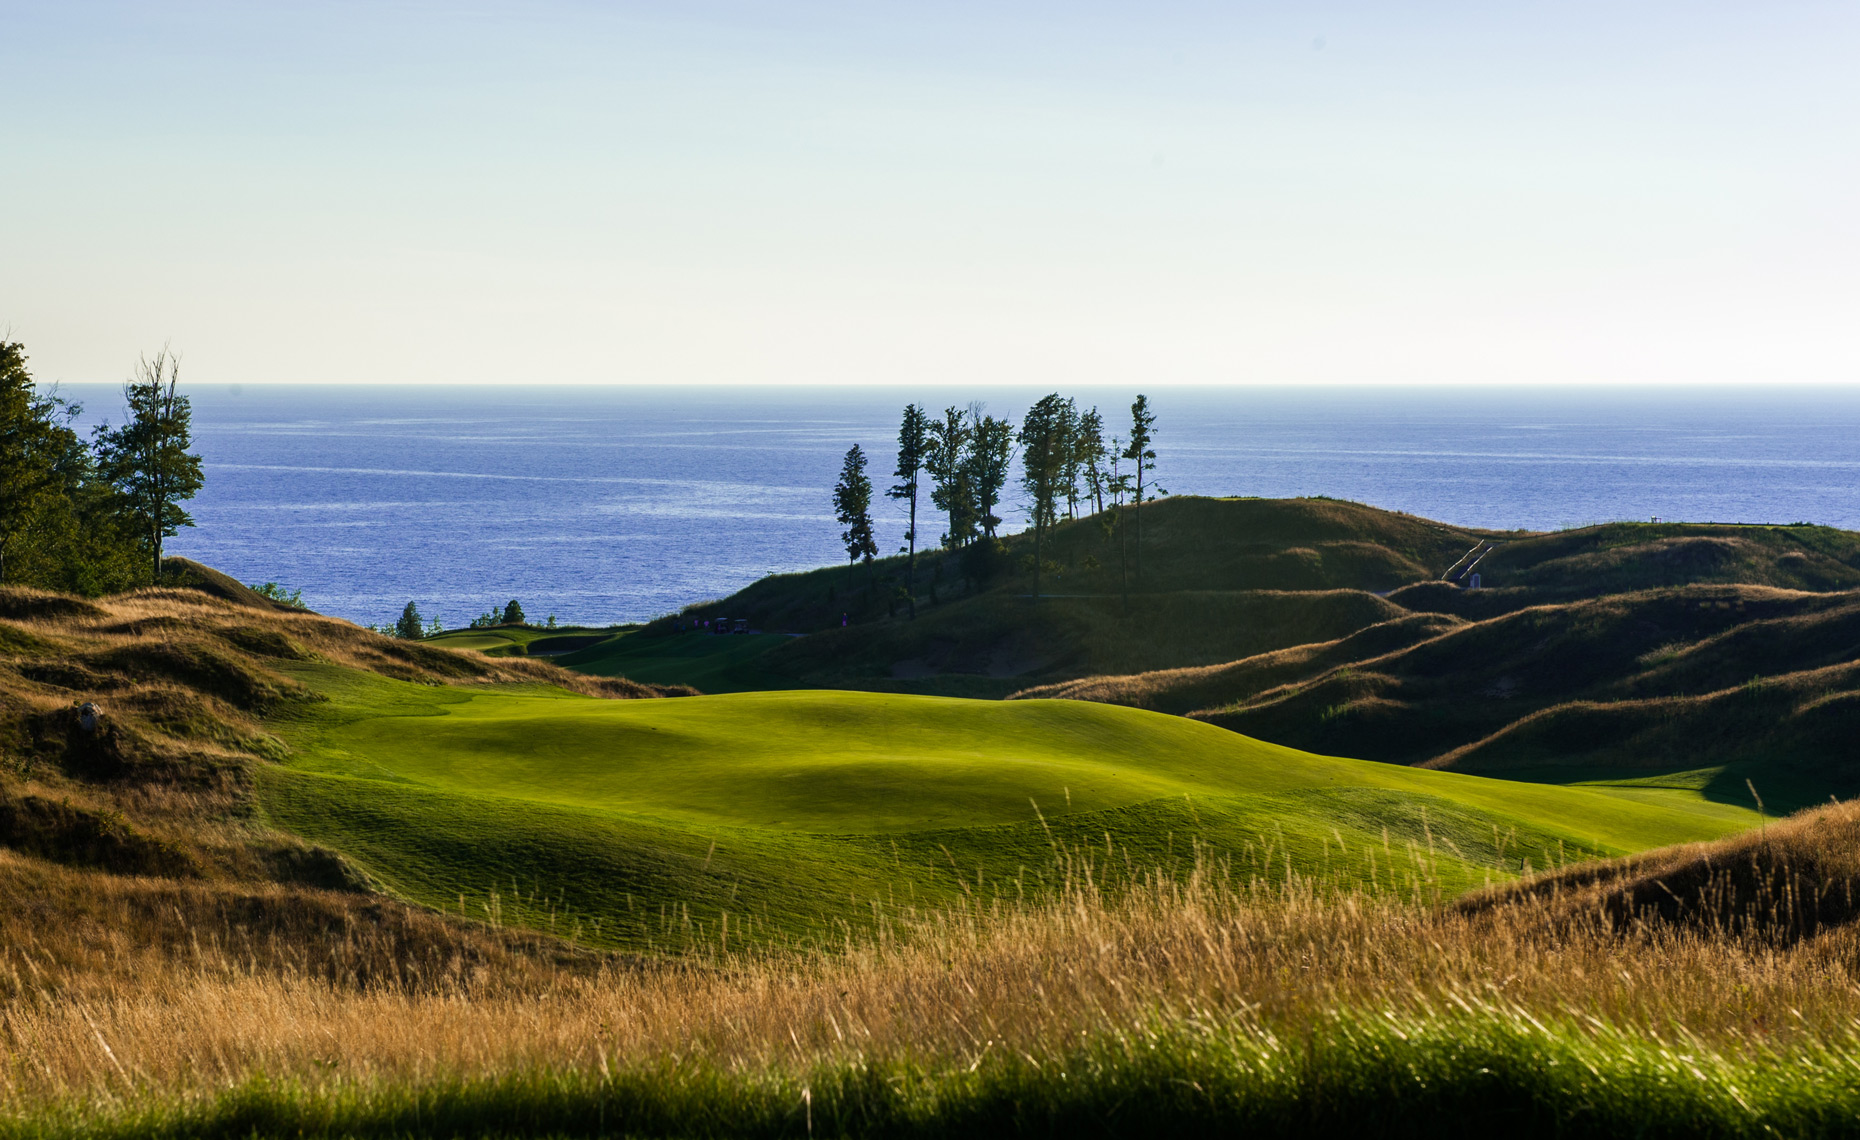 Neil-Colton-travel-photography-arcadia-bluffs-golf-club-117